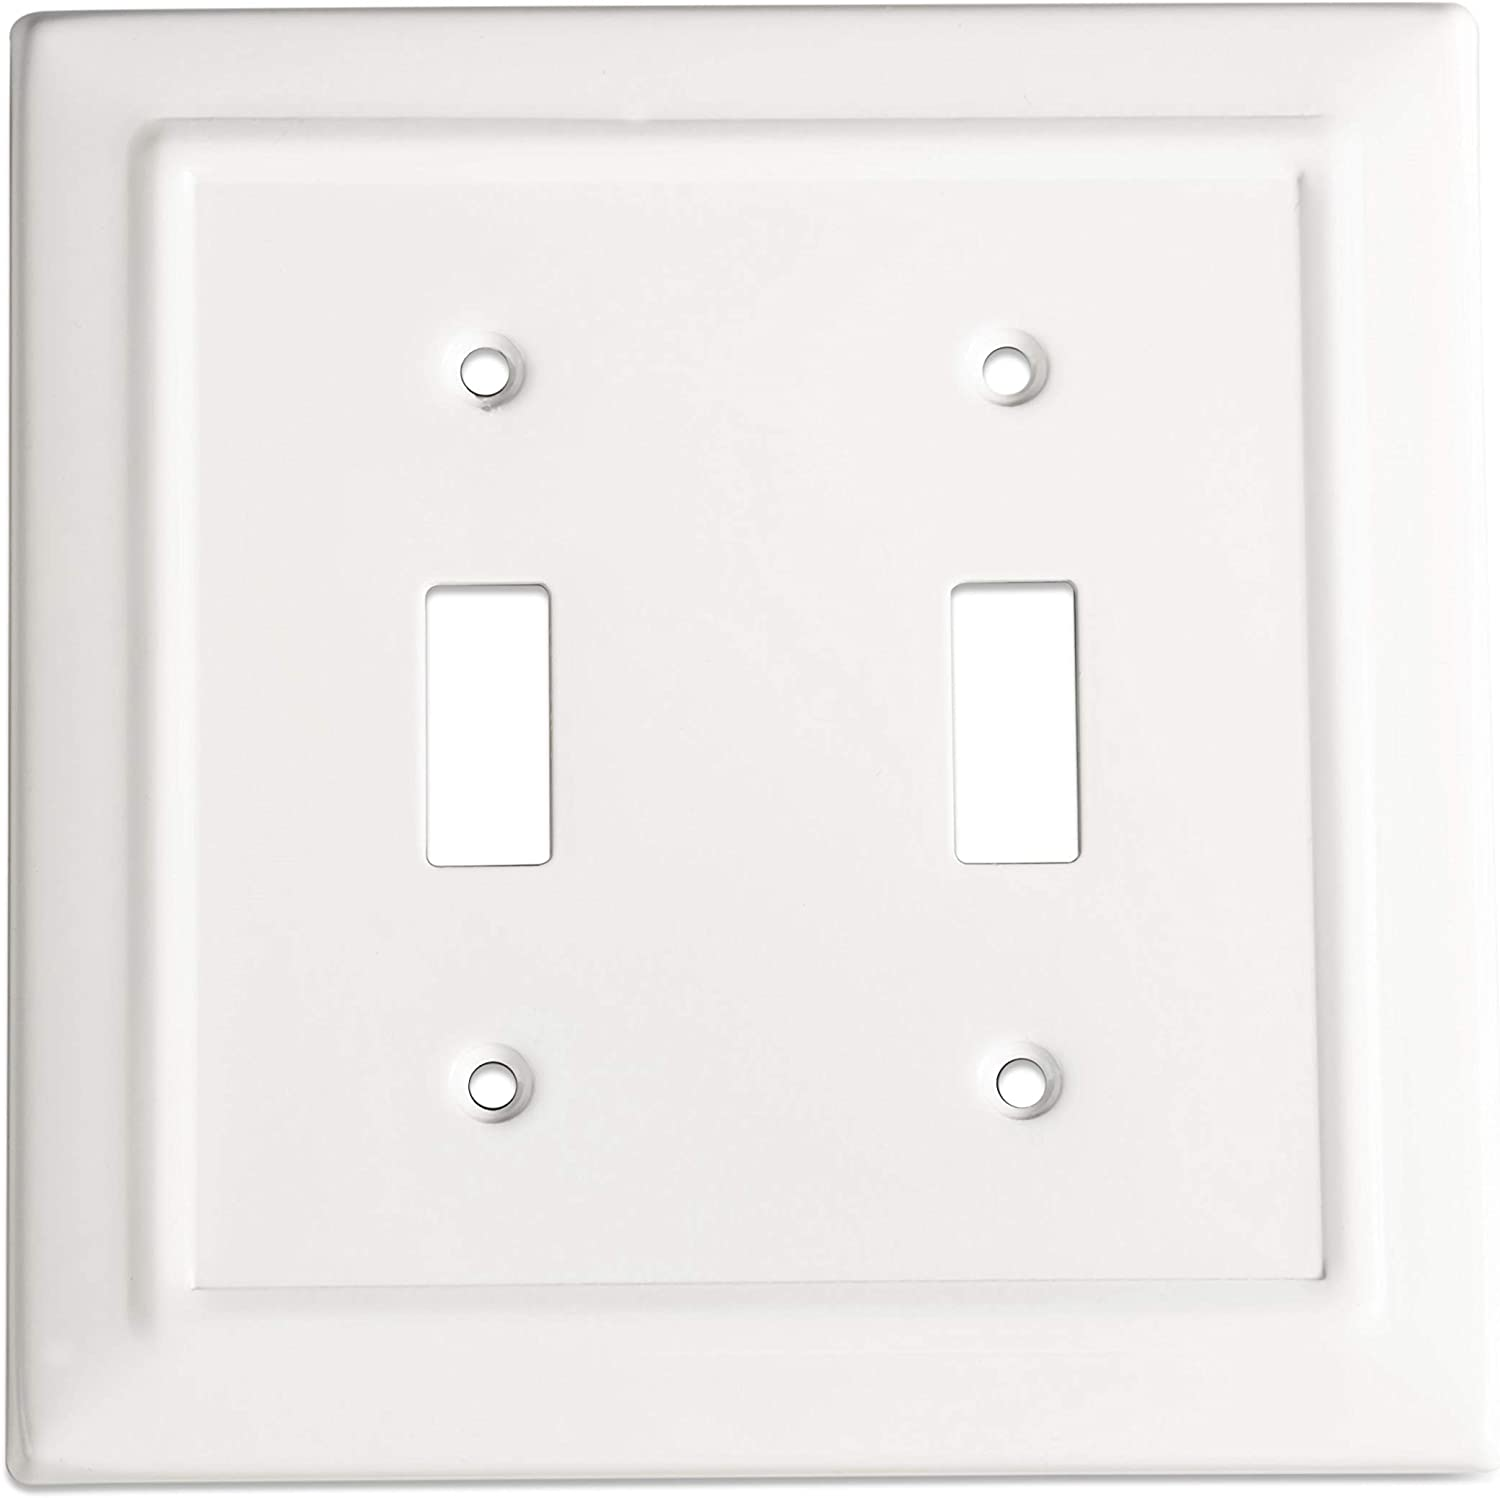 Monarch Abode 19052 Architectural Double Wall Switch Plate, 2-Gang, Classic White